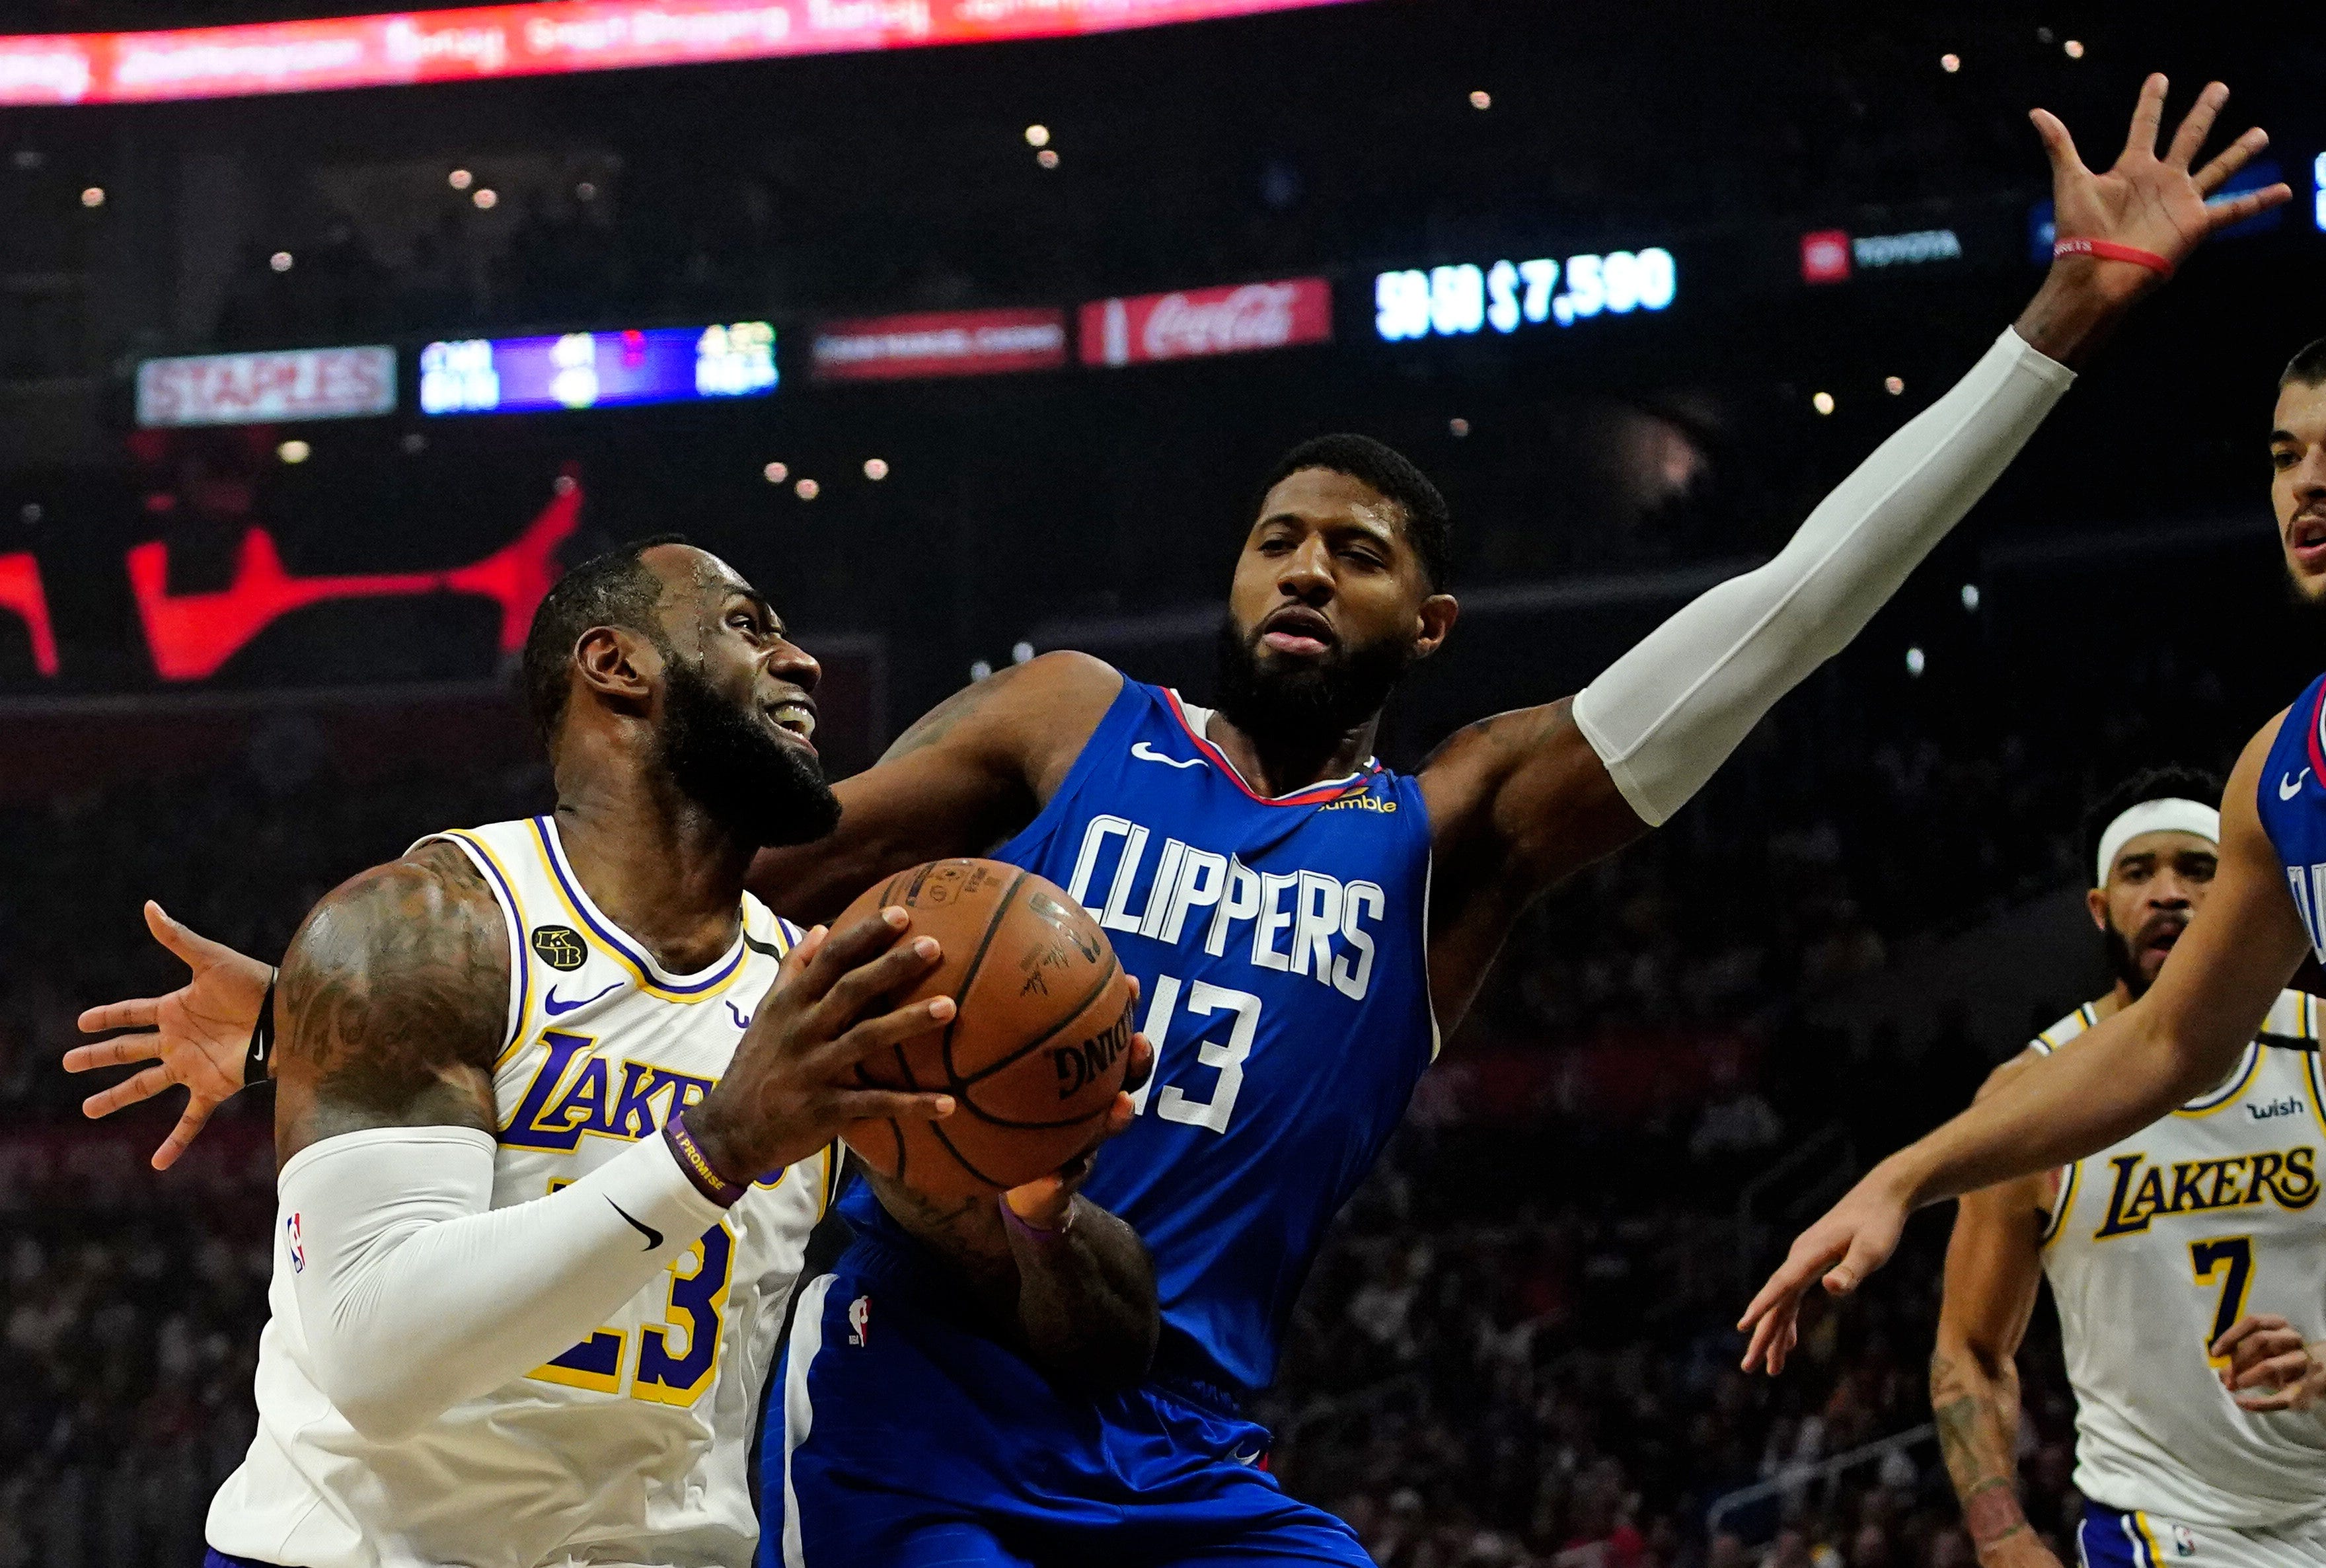 NBA 2019-20 bubble restart burning questions: Are Lakers, Clippers best of the West? What s at stake for Bucks?